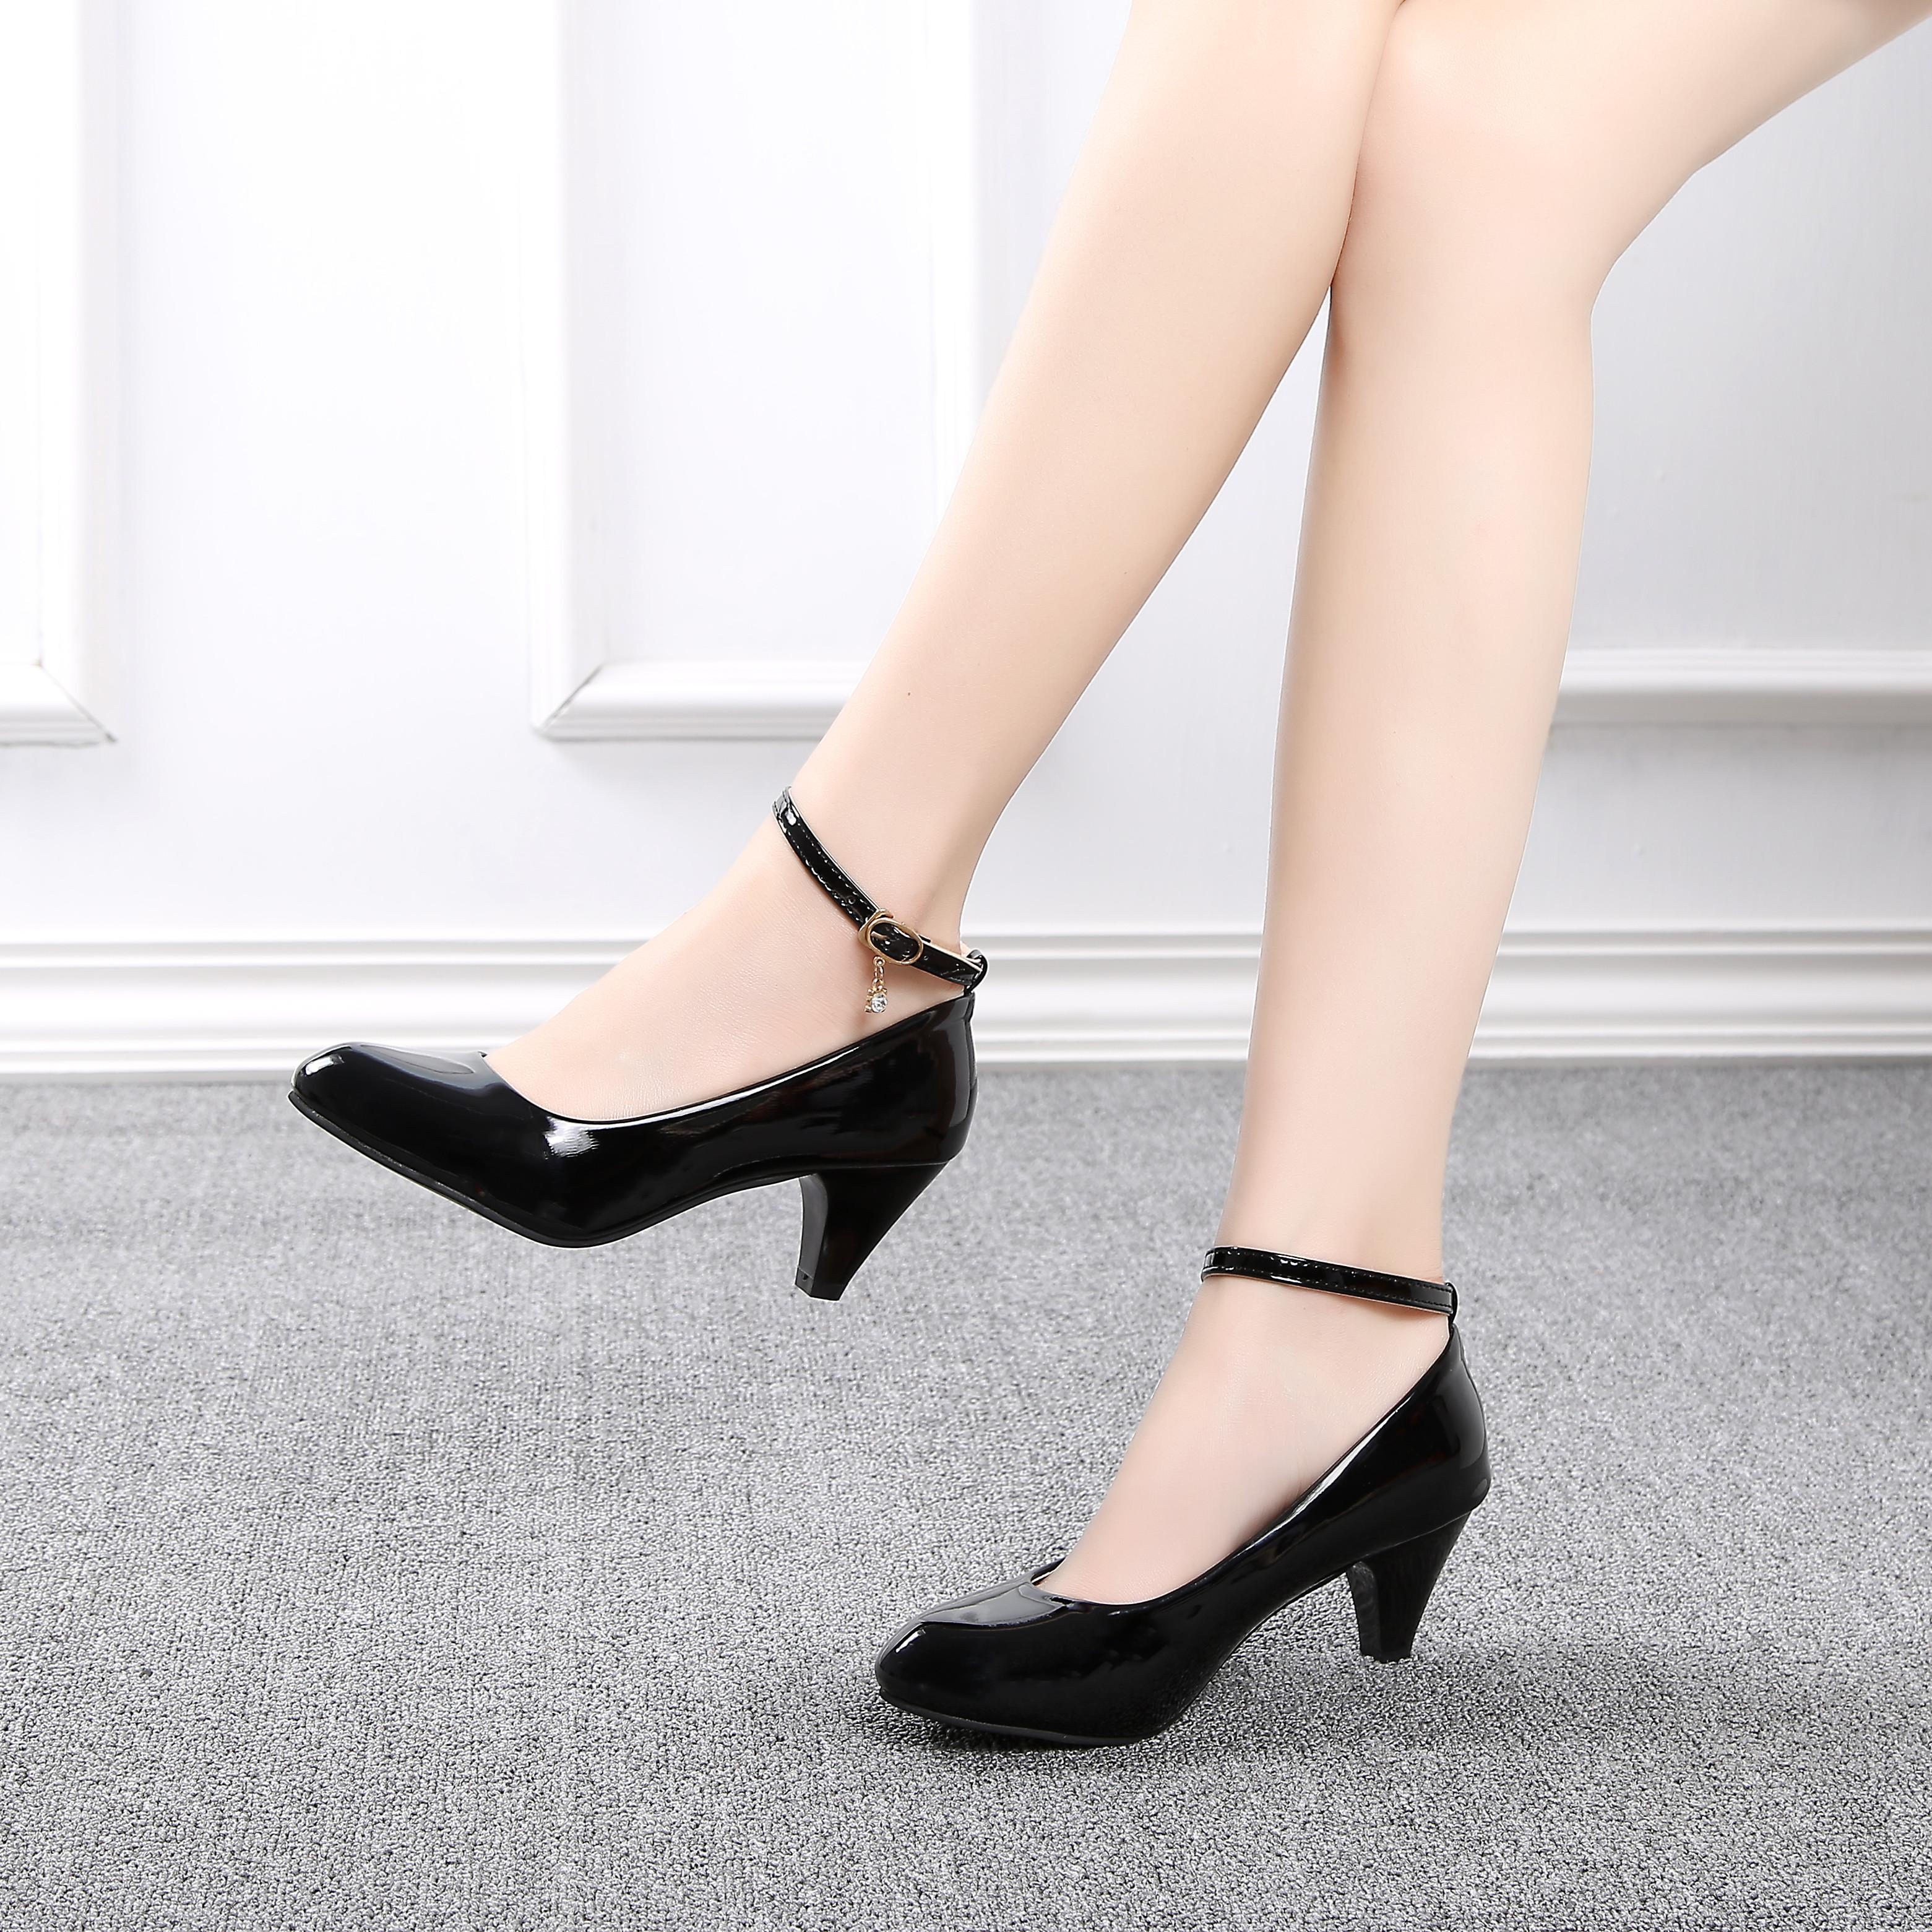 b7e1d6bb2e1 Work Shoes women Black Wrist Strap Block Heel Semi-high Heeled Low Heel  Vocational Interview